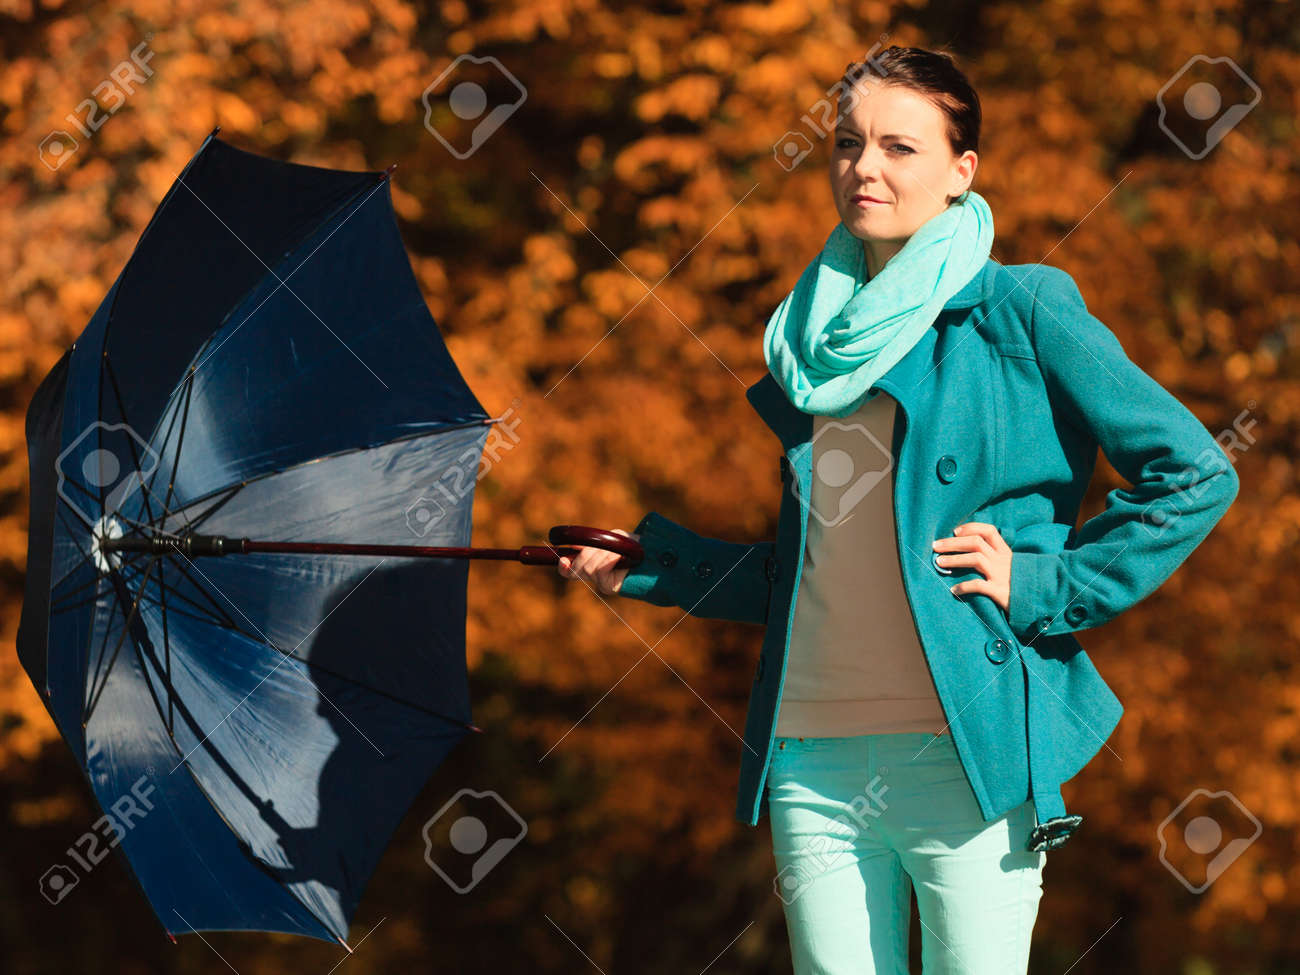 4badc3af70d Happiness freedom and people concept. Casual young woman teen girl walking  relaxing with blue umbrella